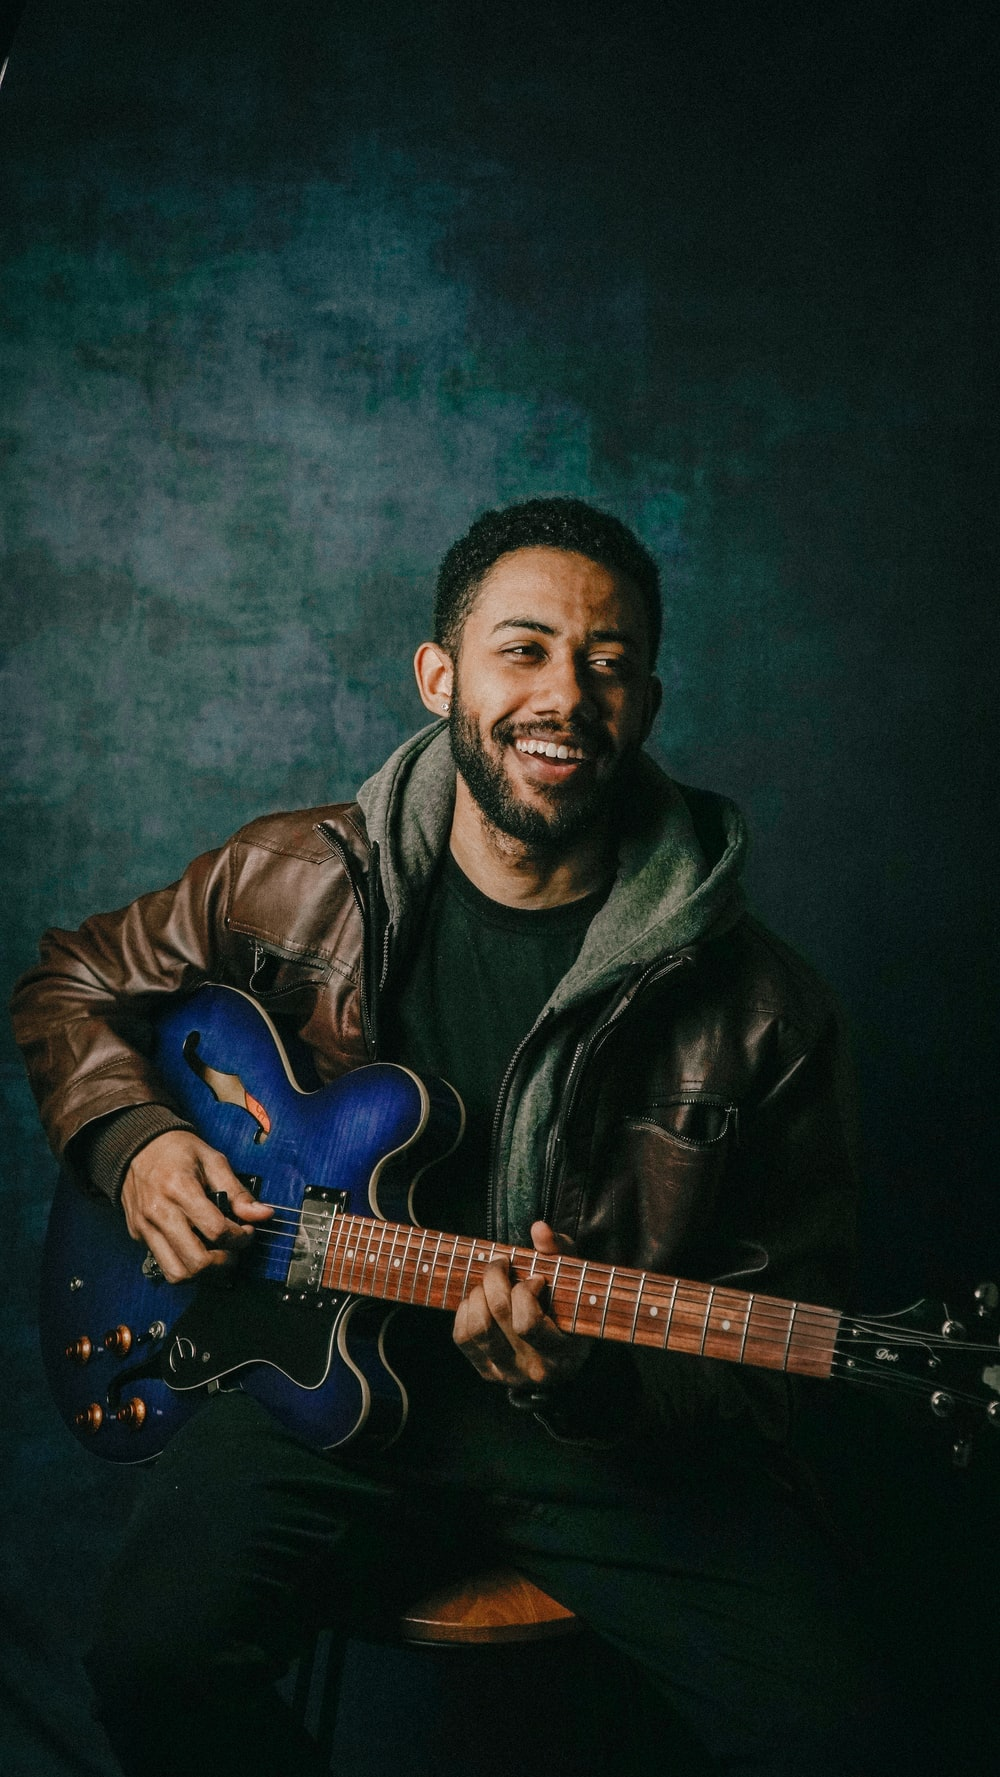 man in black leather jacket playing blue electric guitar